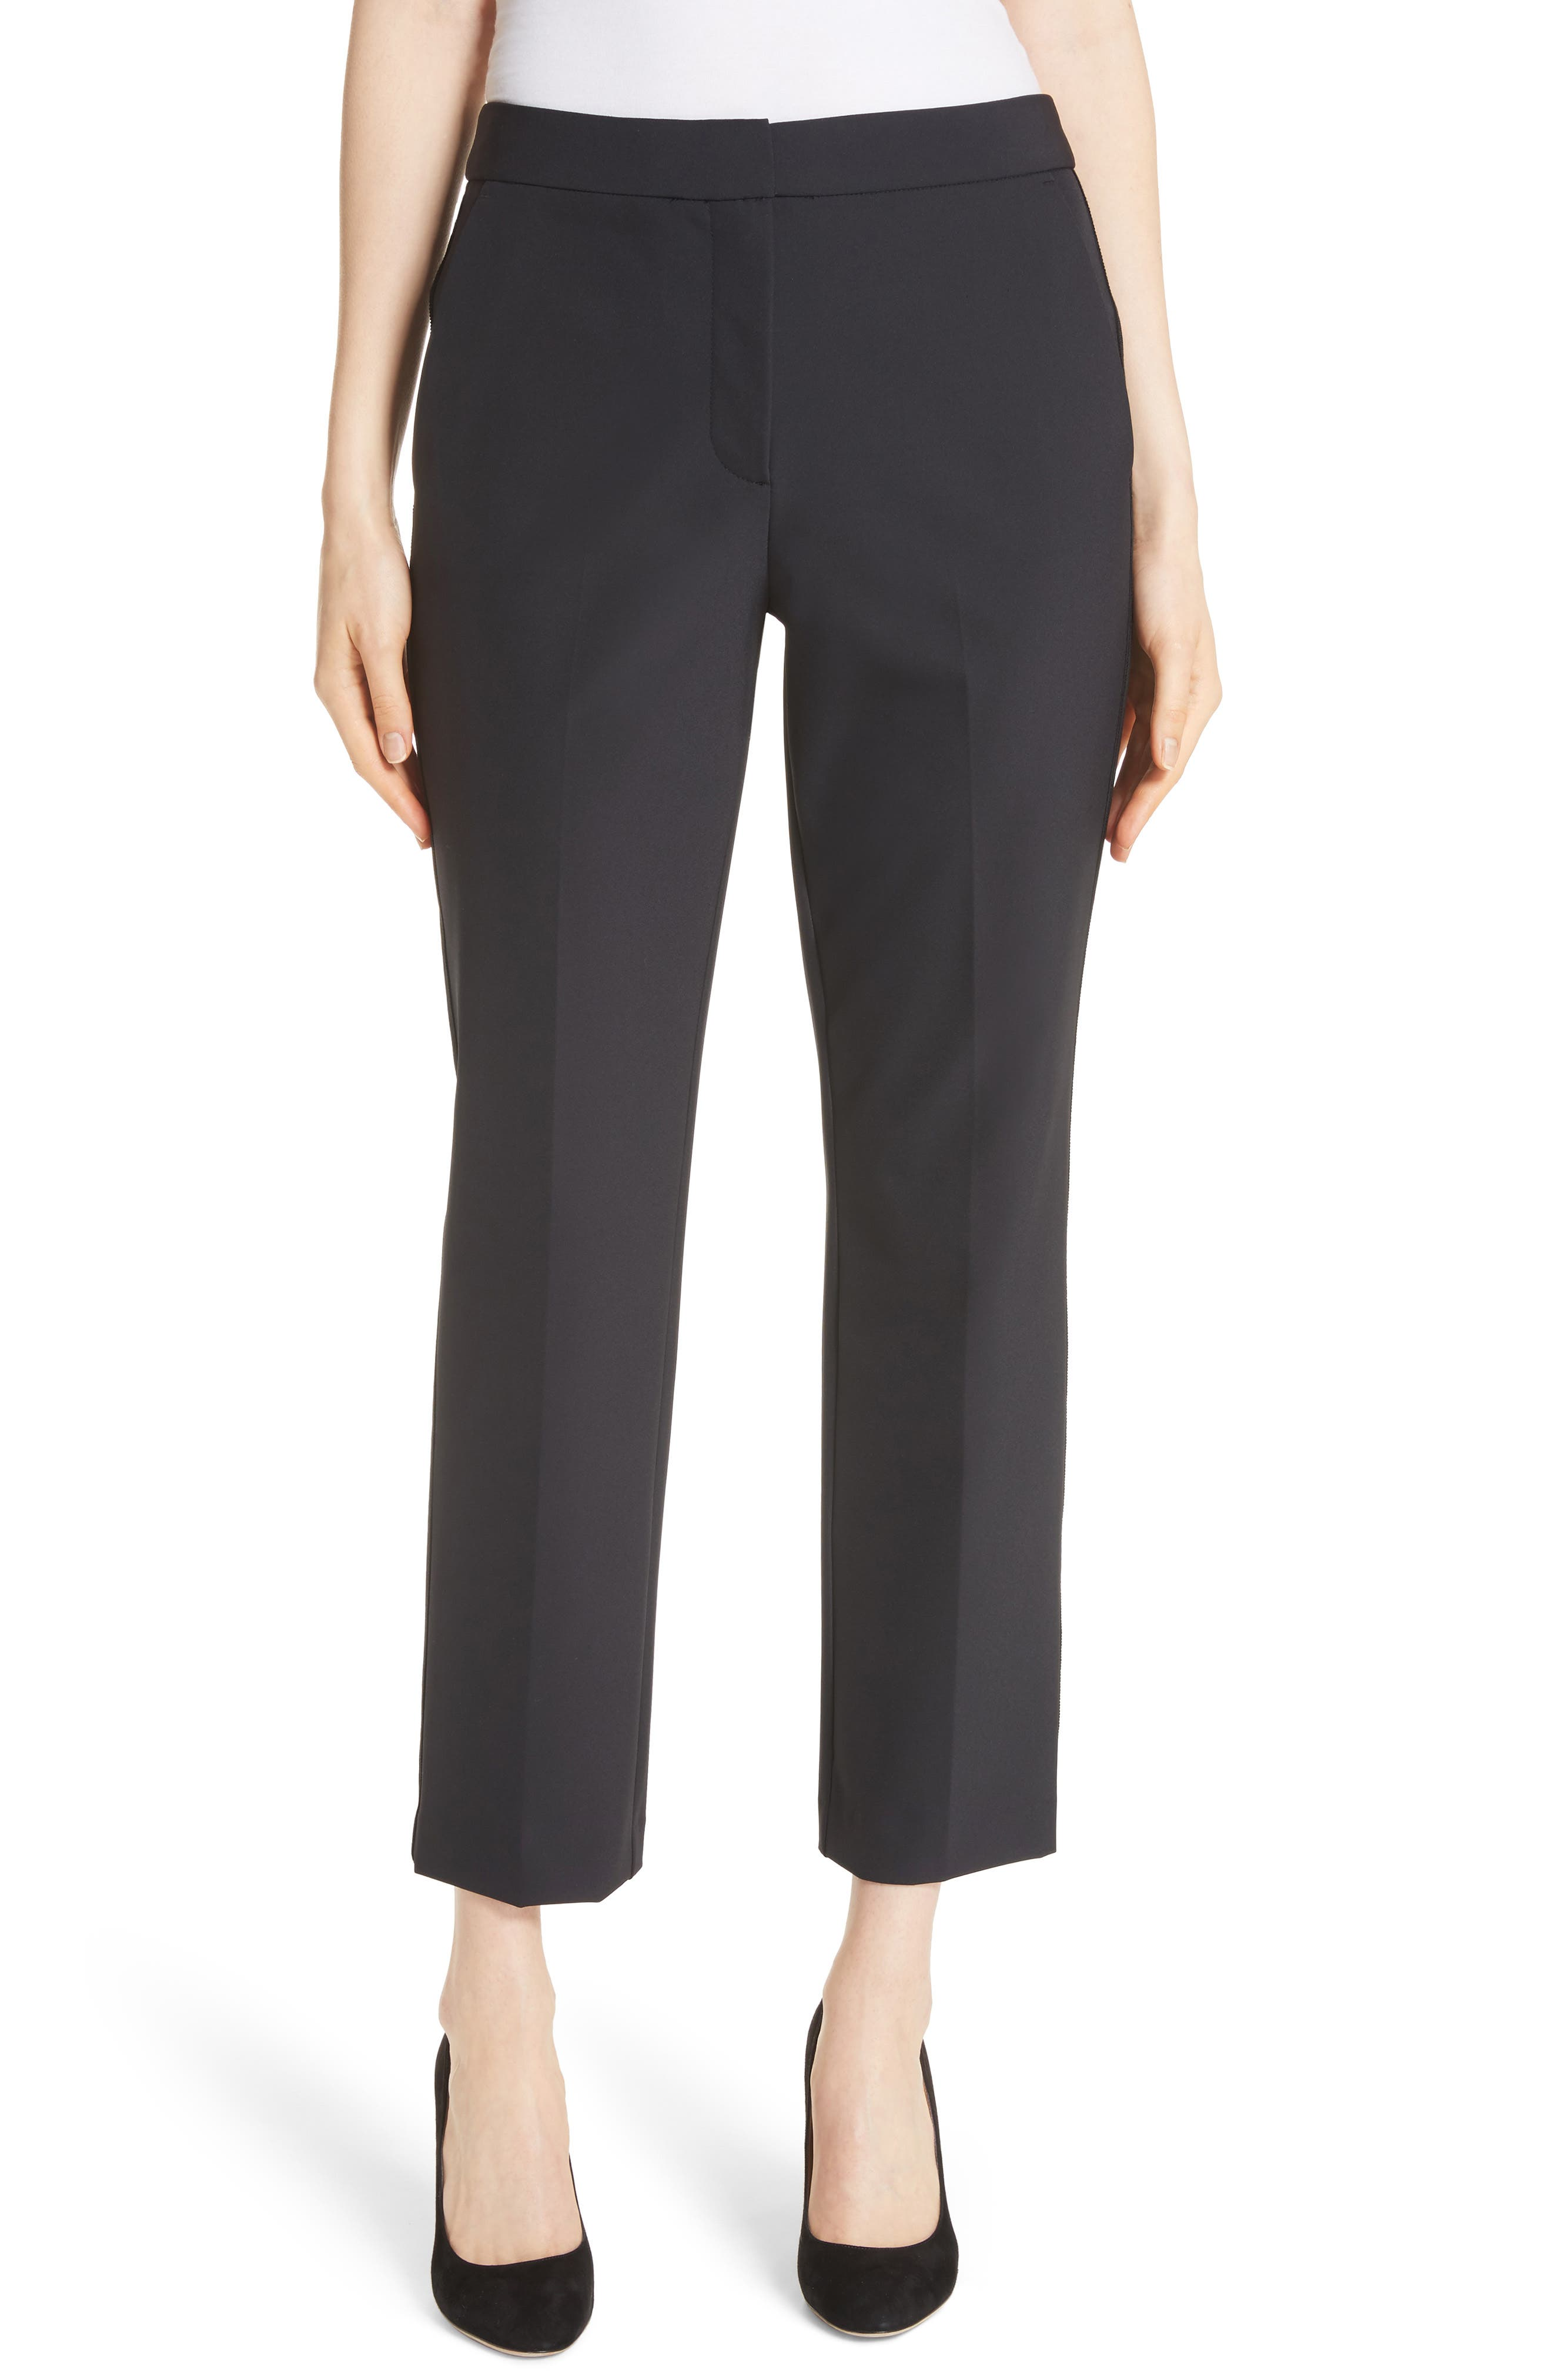 Audra Crop Pants,                             Main thumbnail 1, color,                             Black